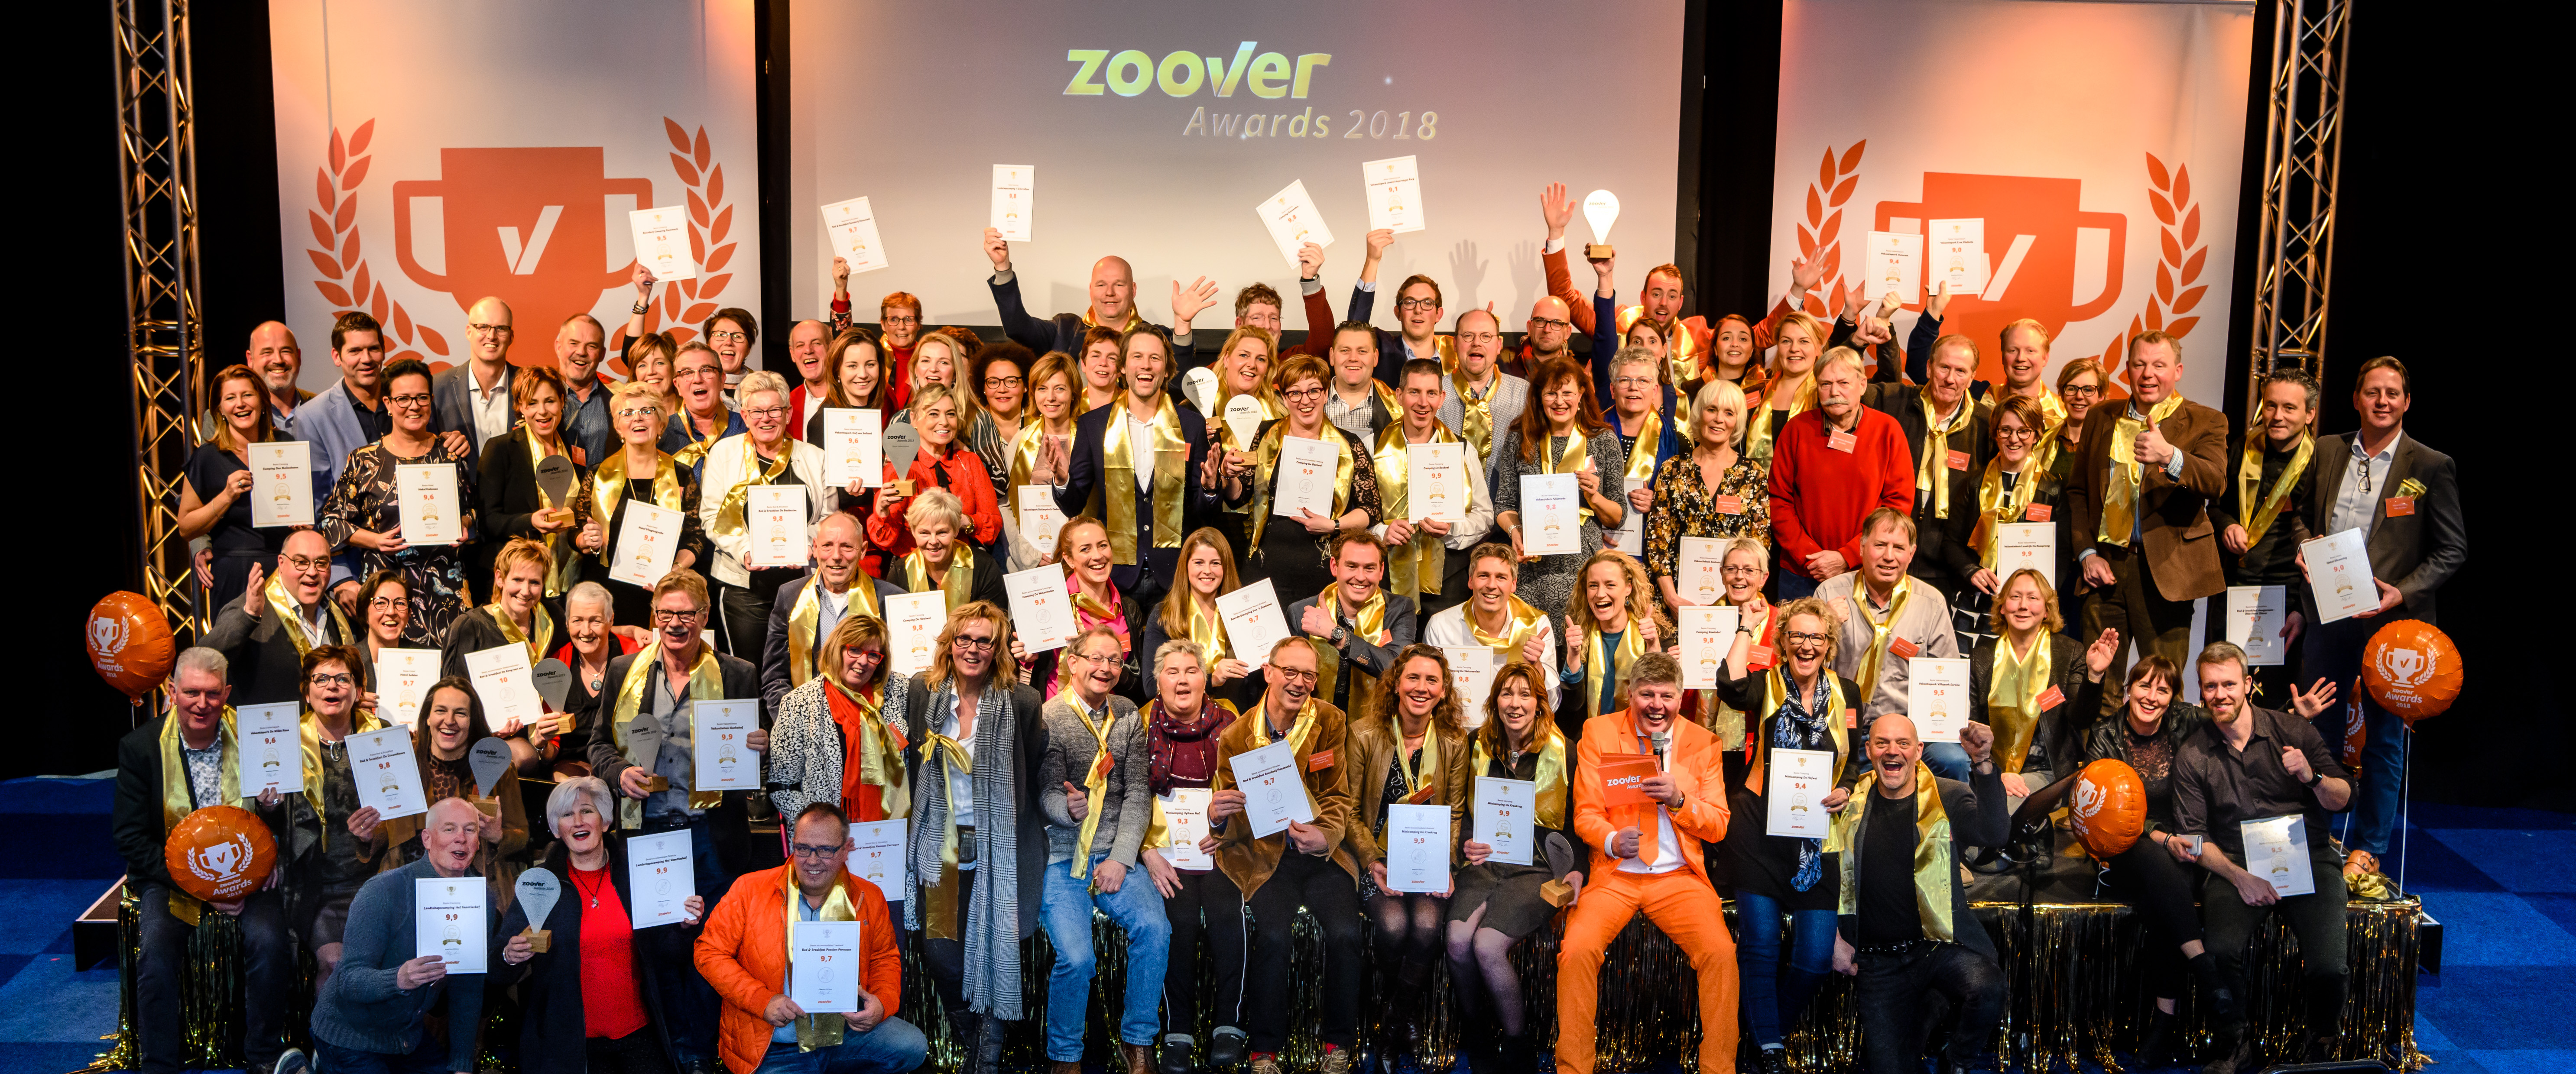 zoover_100119-001 (1)